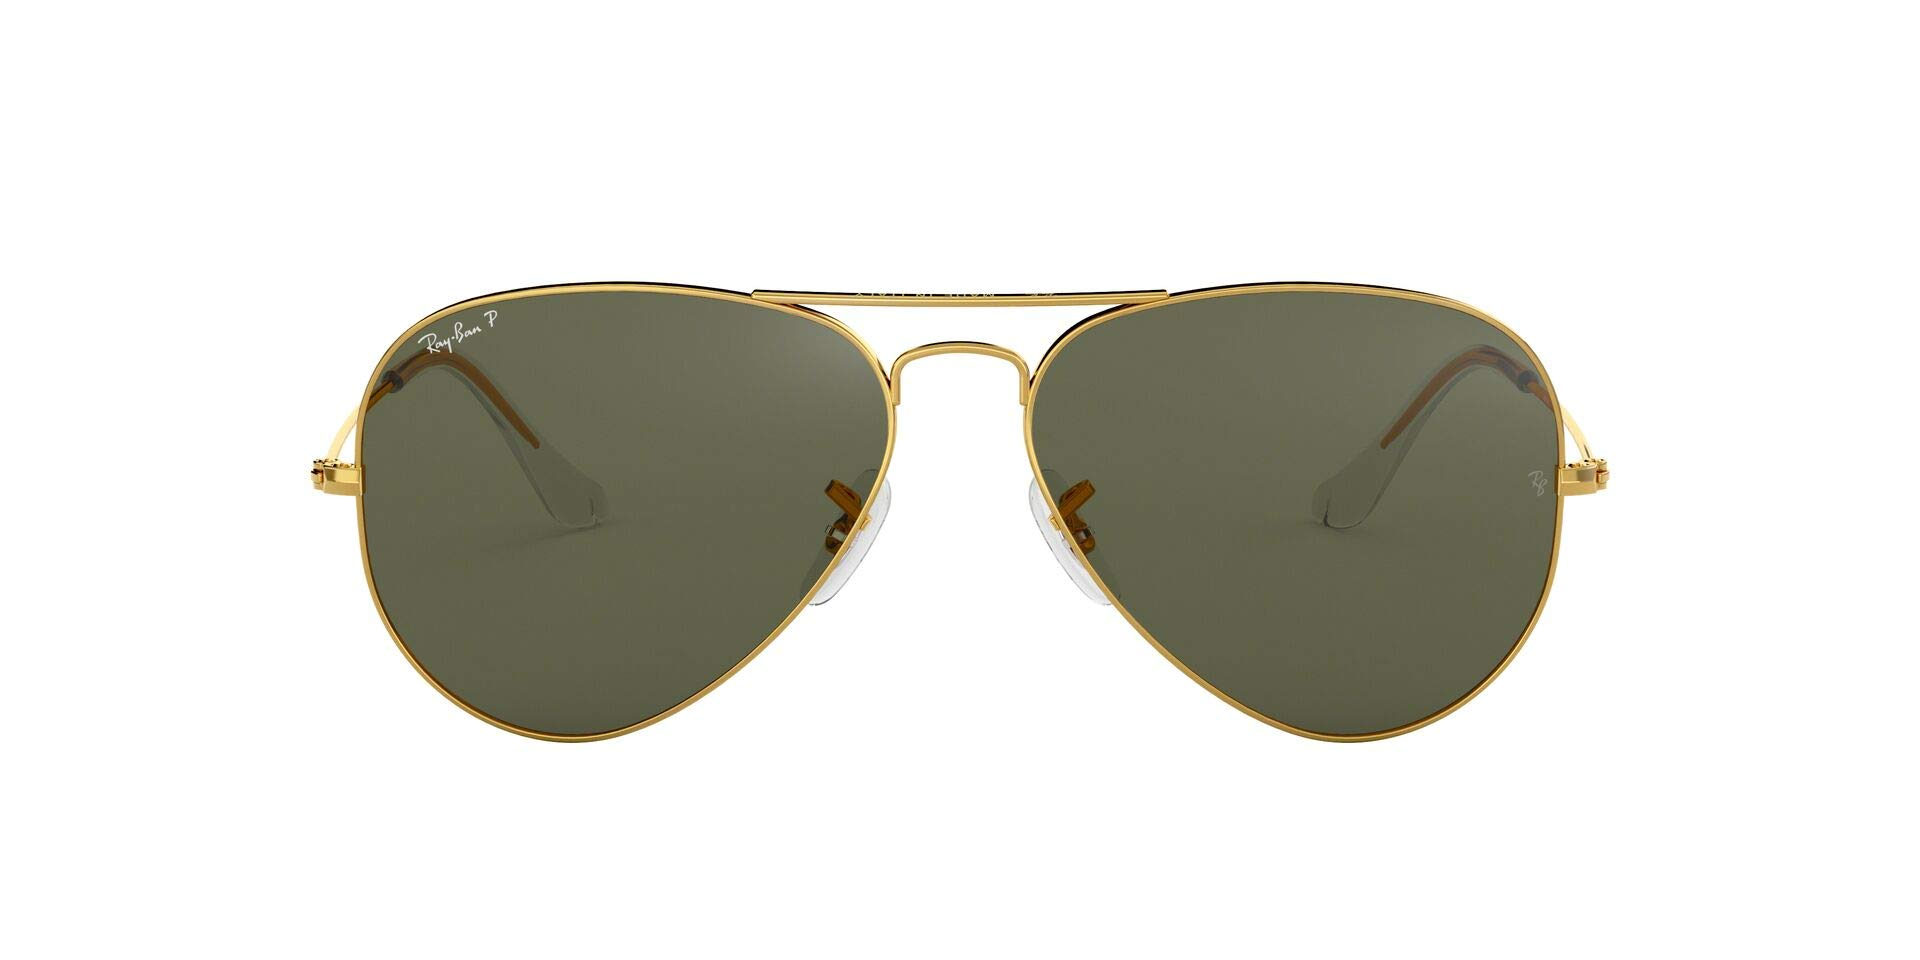 RAY-BAN RB3025 Aviator Large Metal Sunglasses, Gold/Dark Green Crystal, 55 mm by RAY-BAN